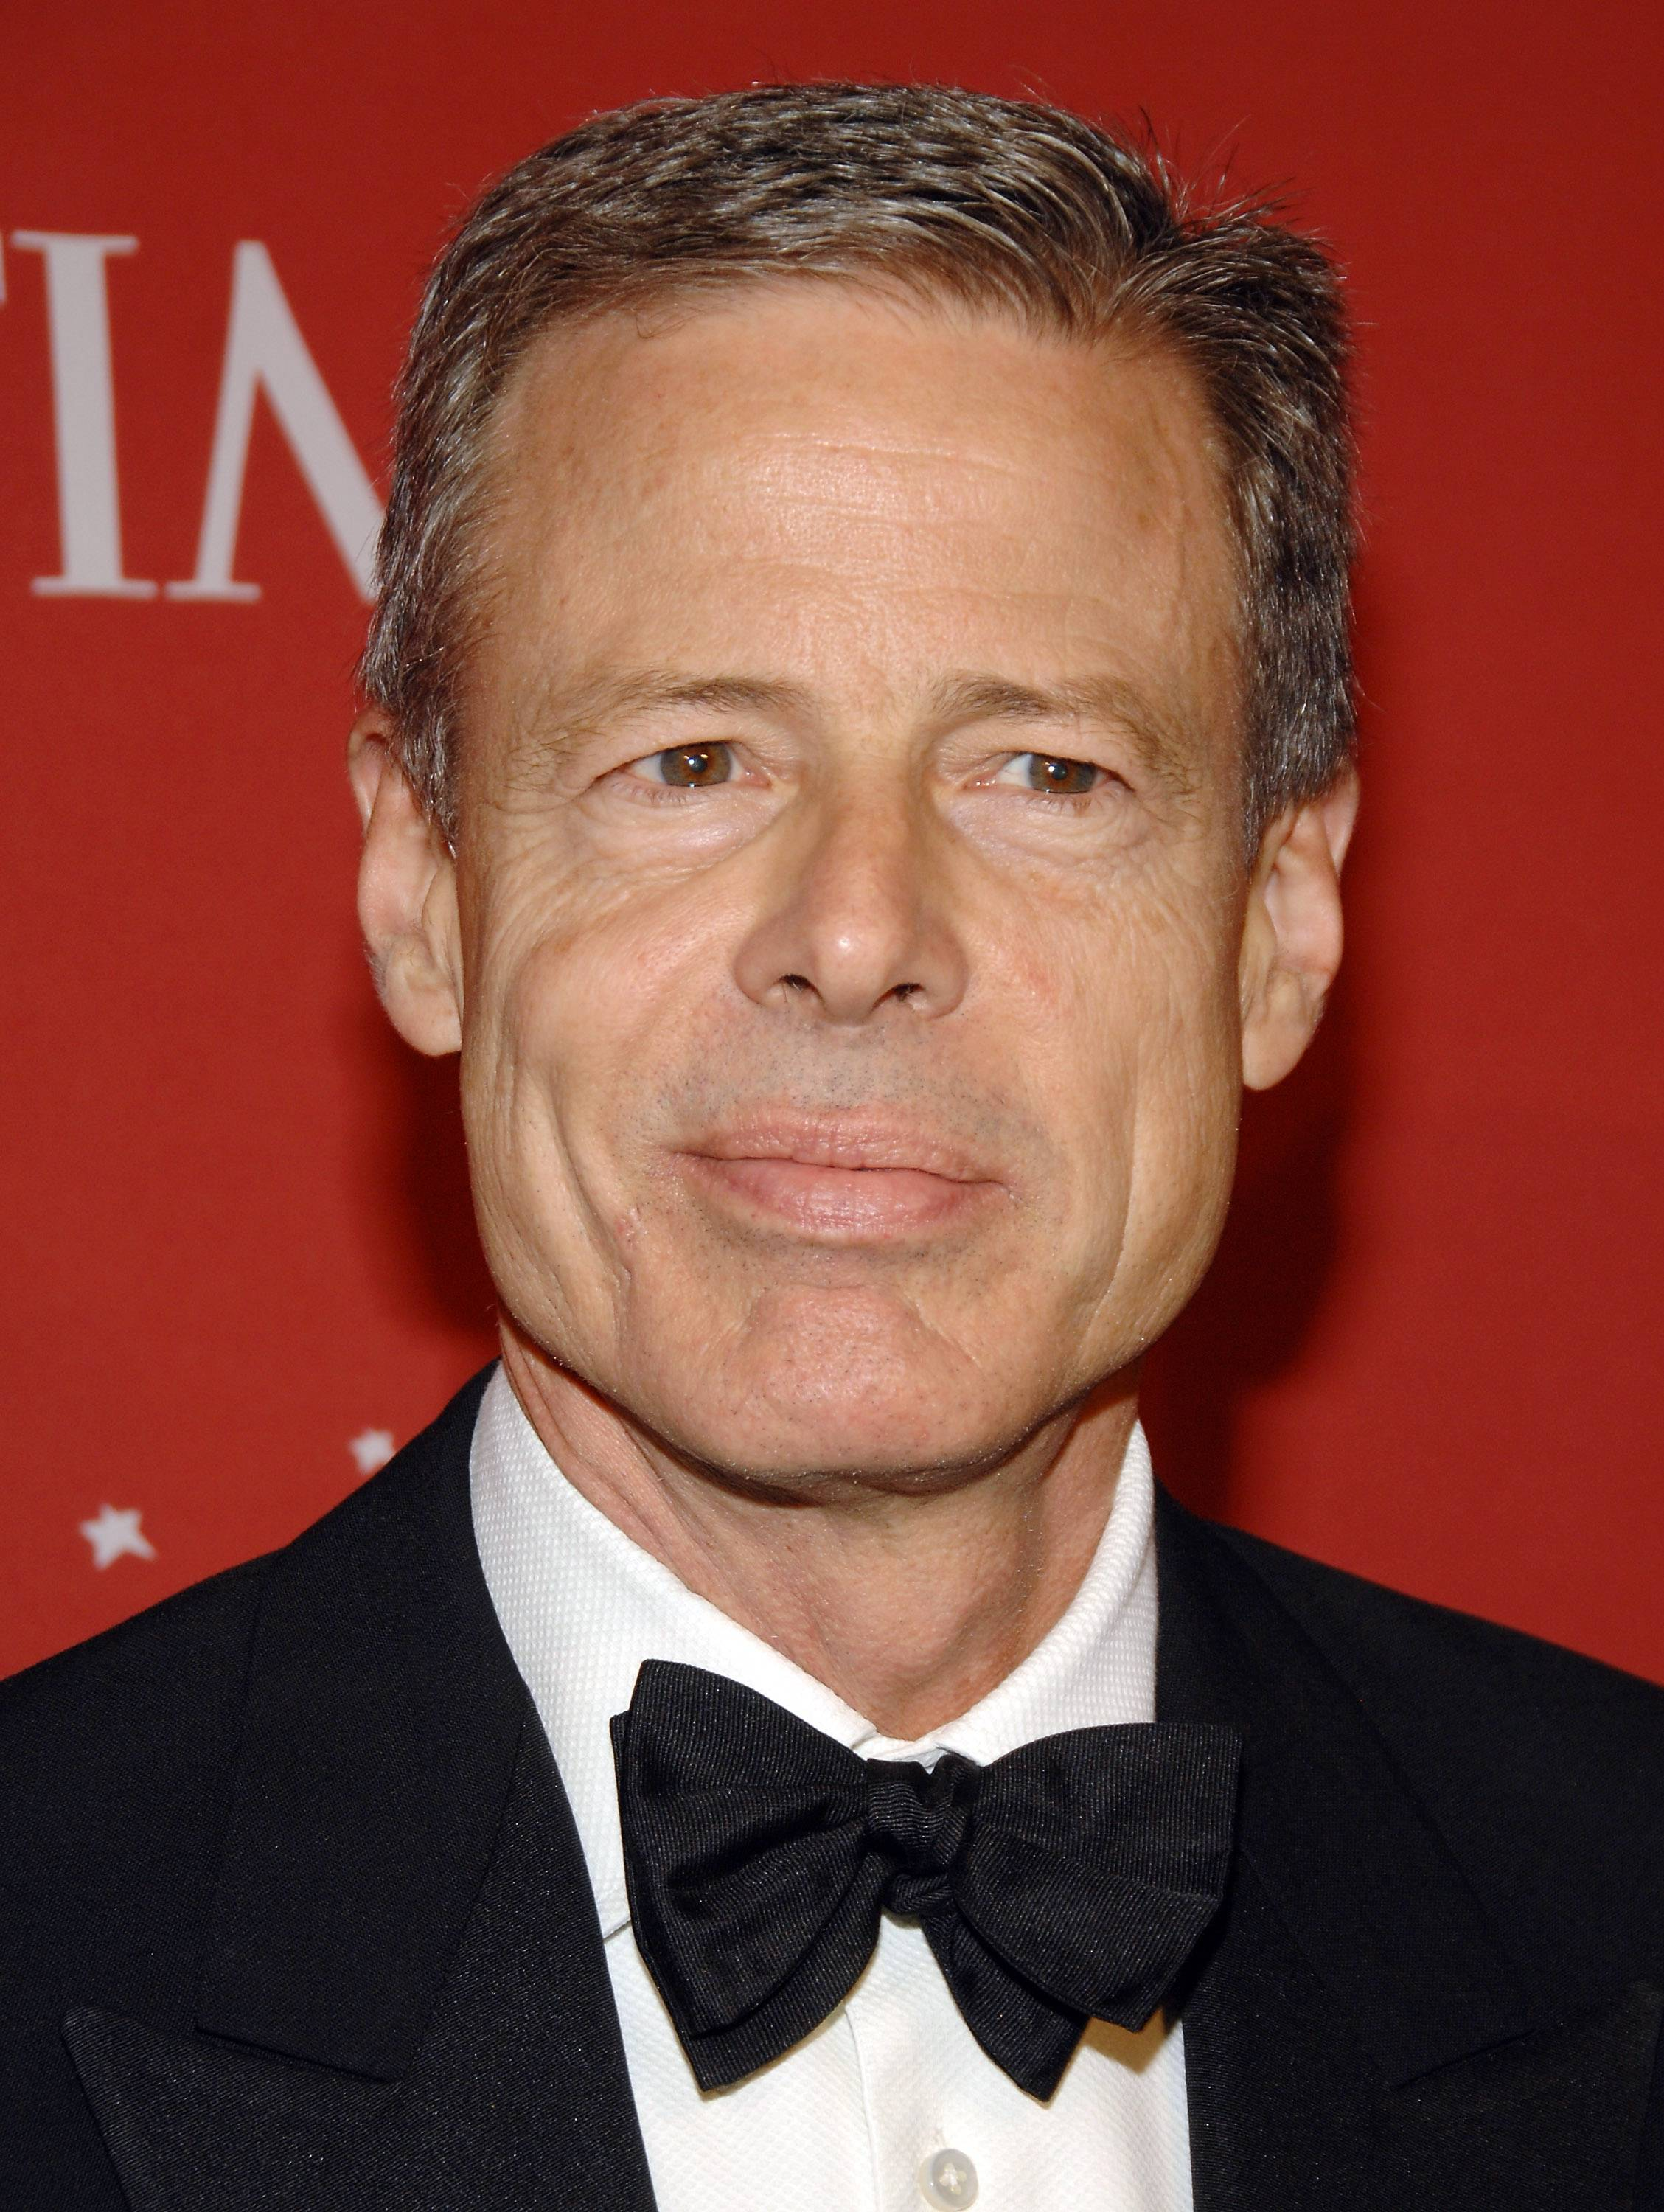 9.Time Warner President and CEO Jeffrey Bewkes.